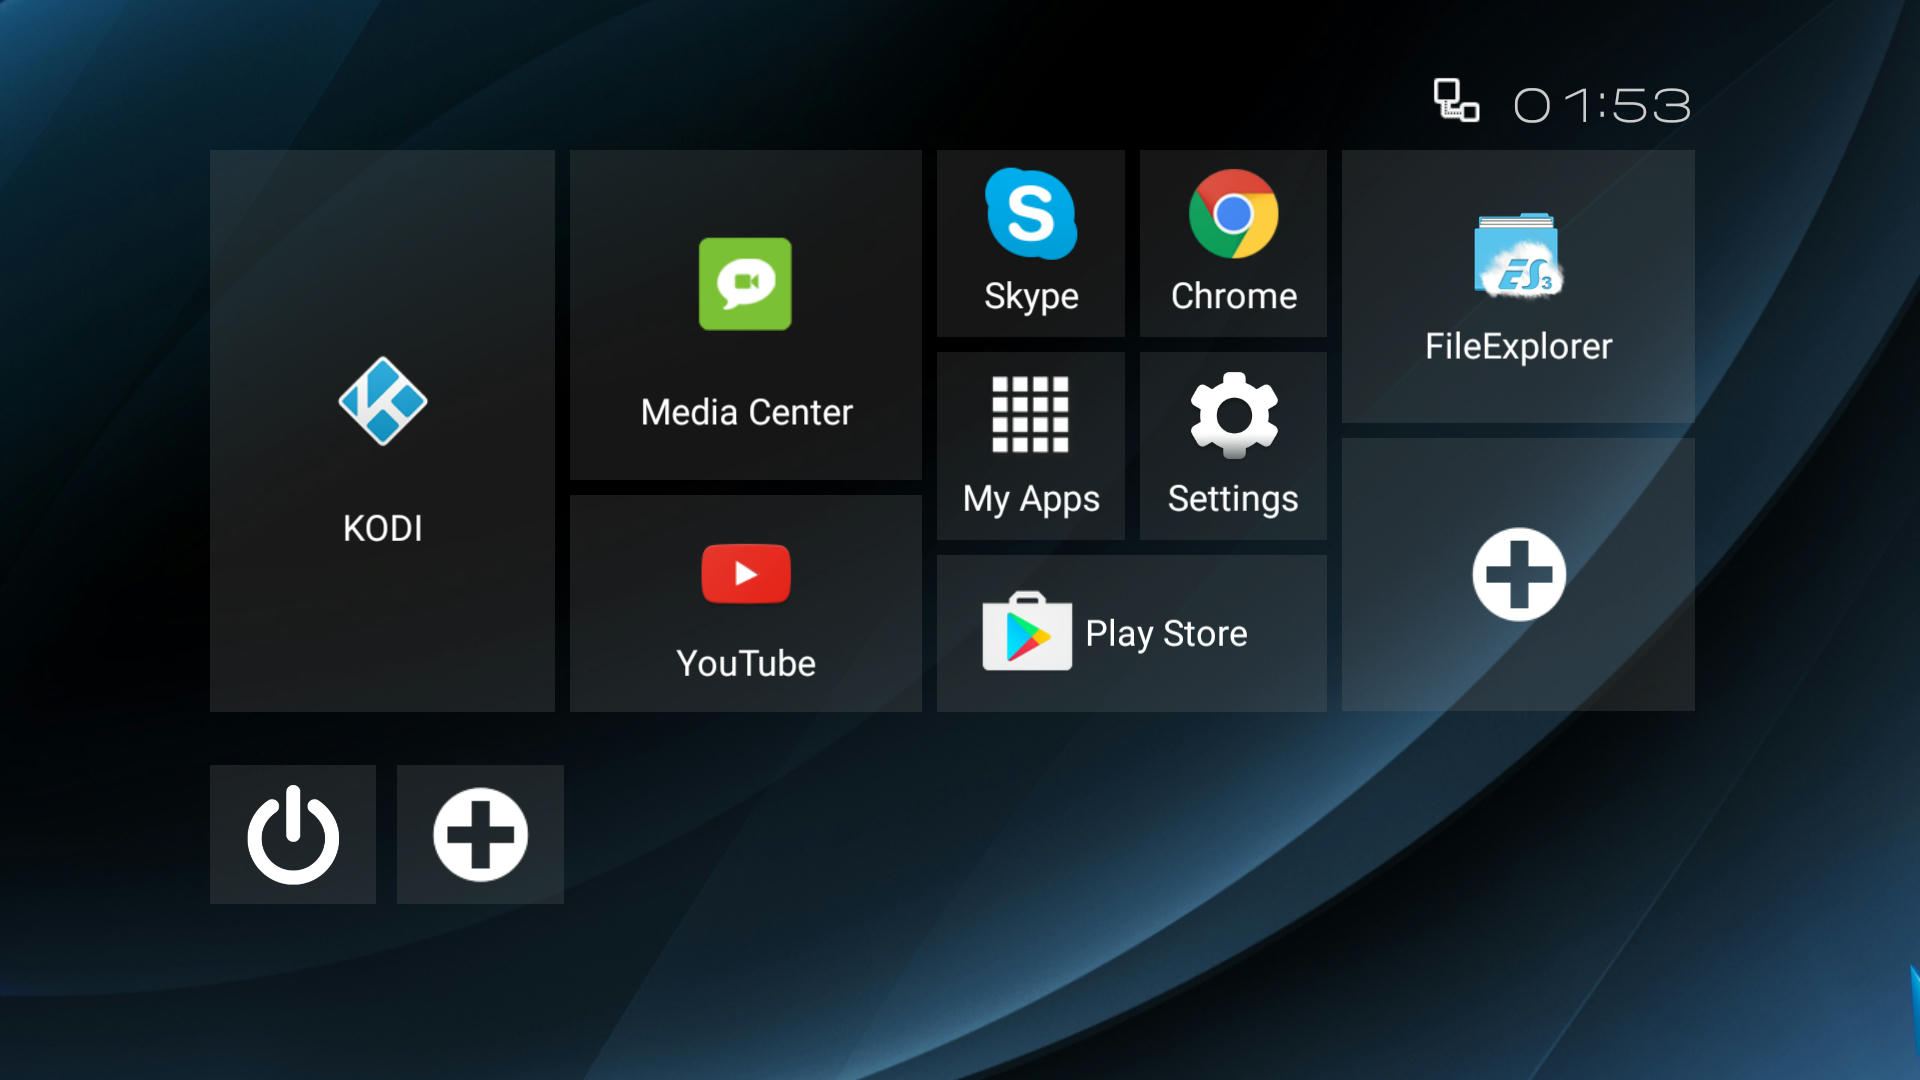 adobe flash player download android 5.1.1